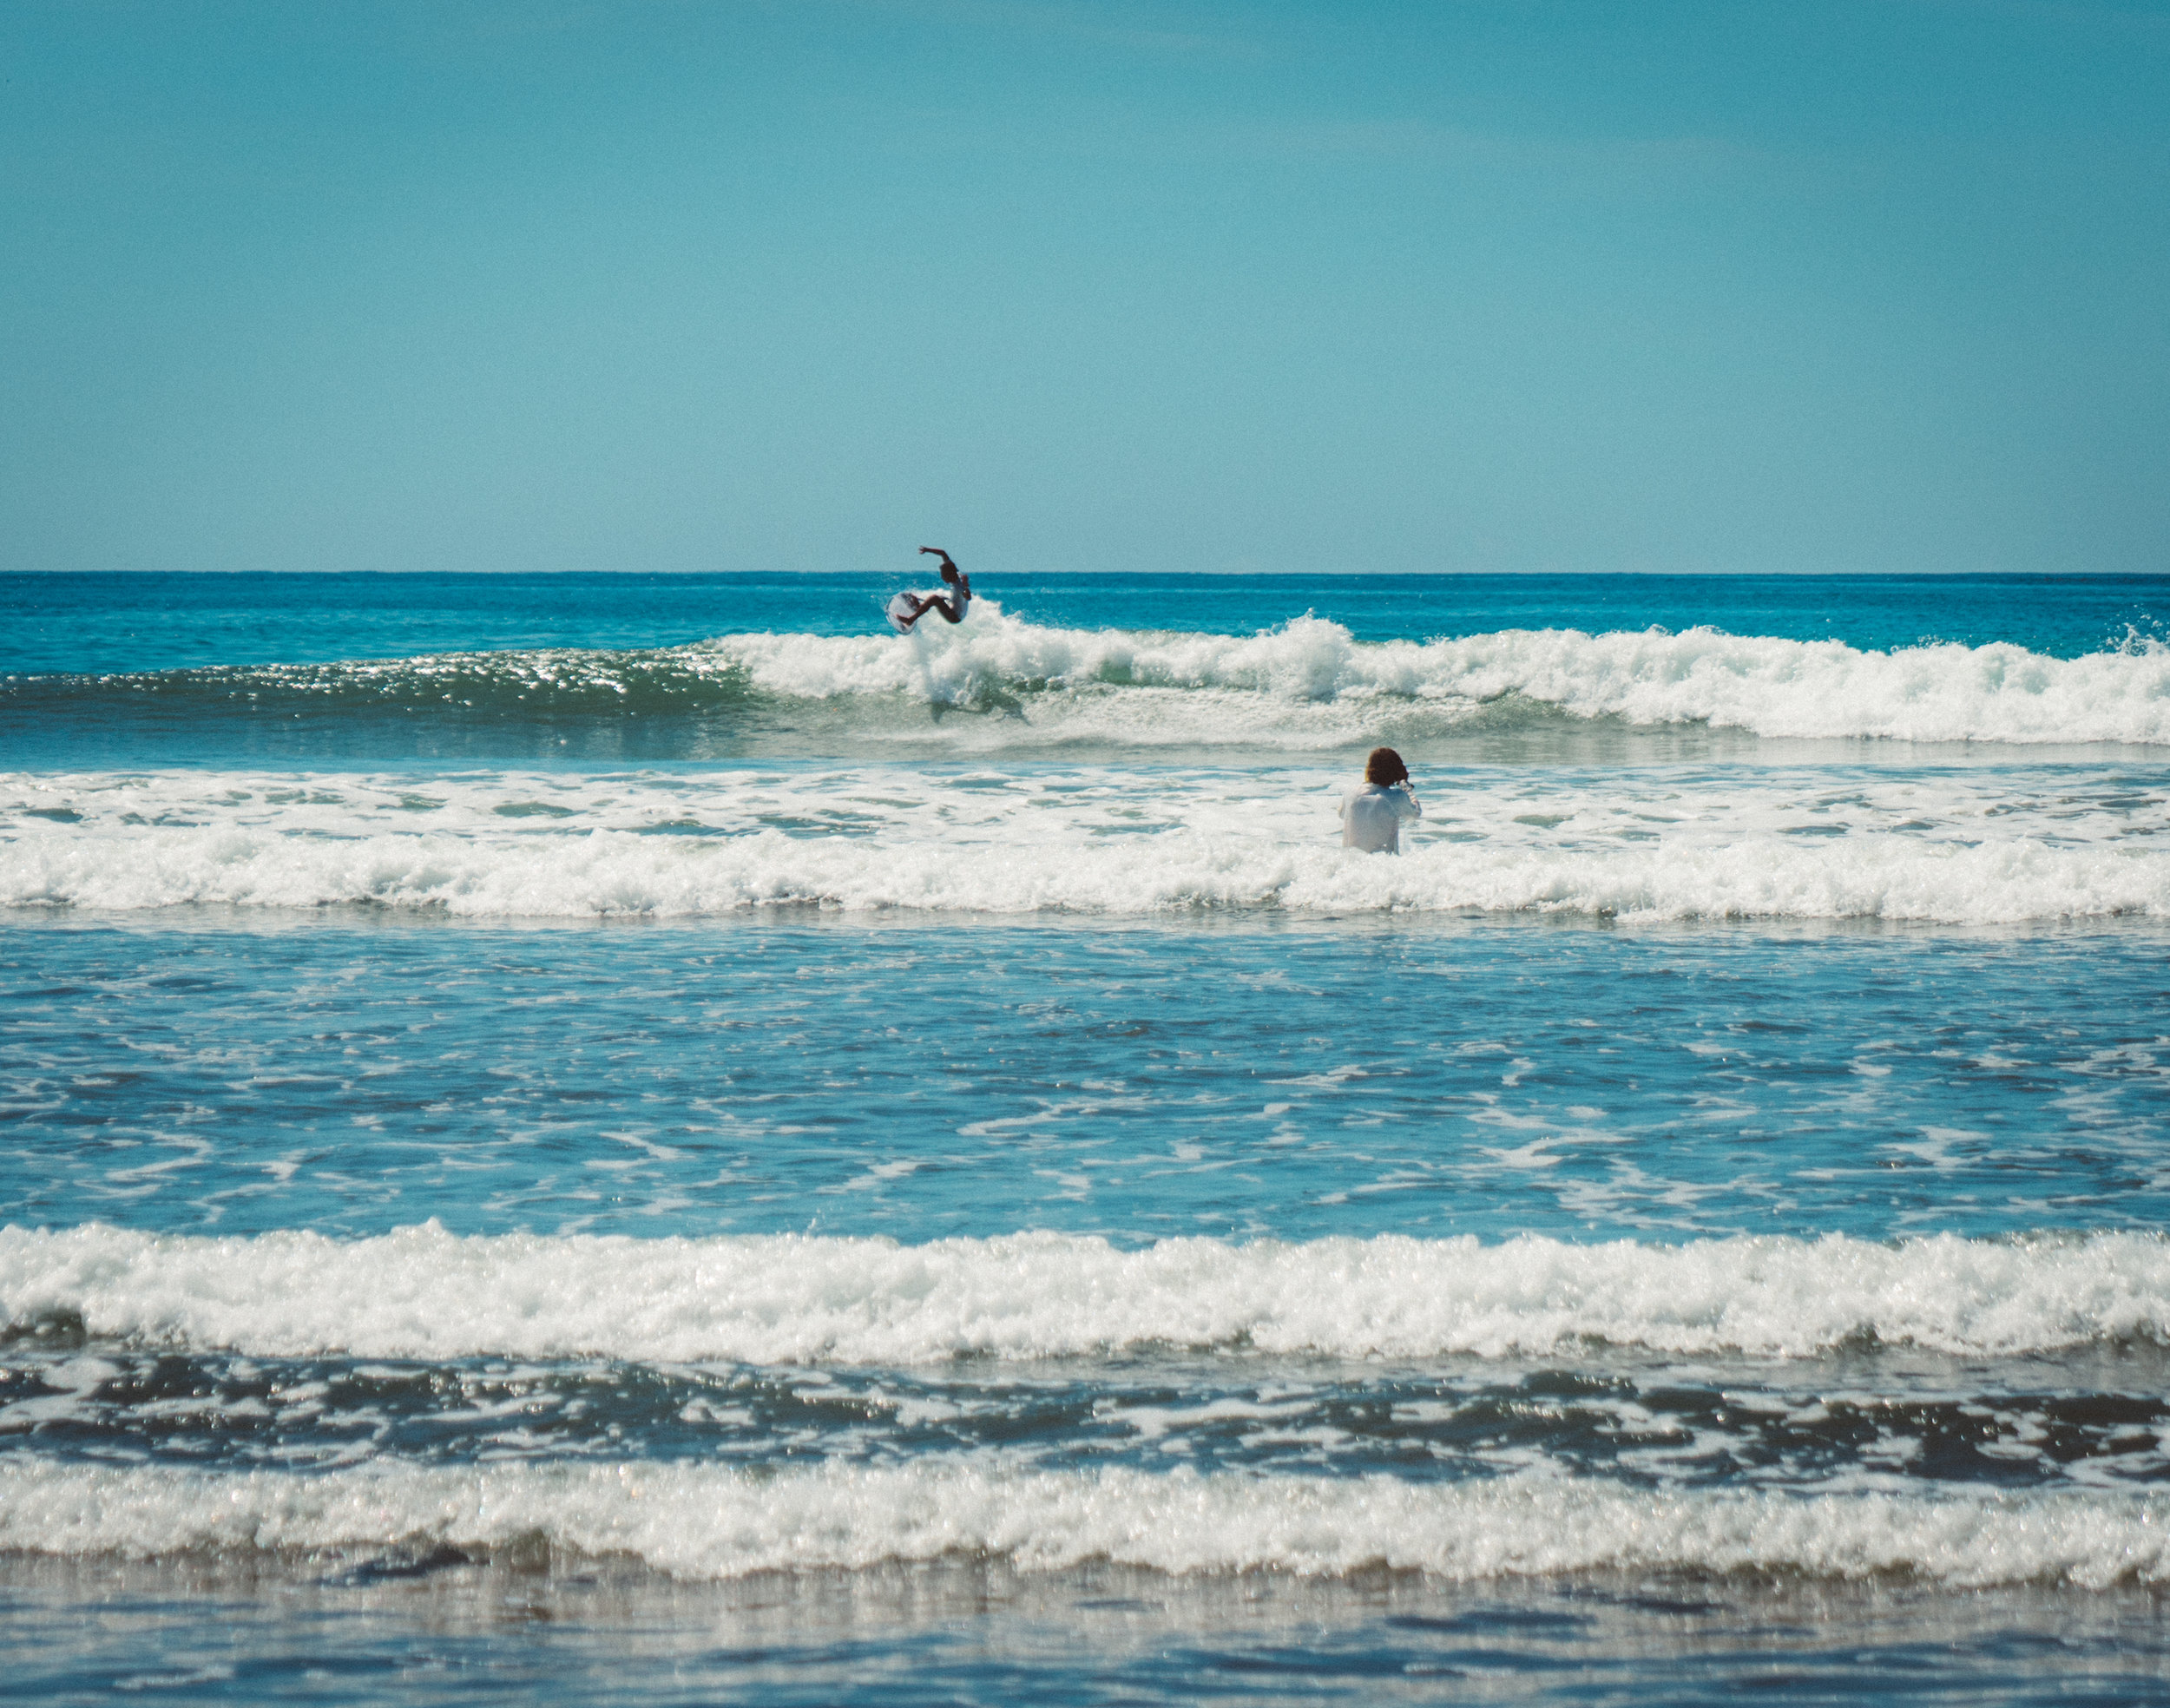 Some professional surfers competing in Dominical.